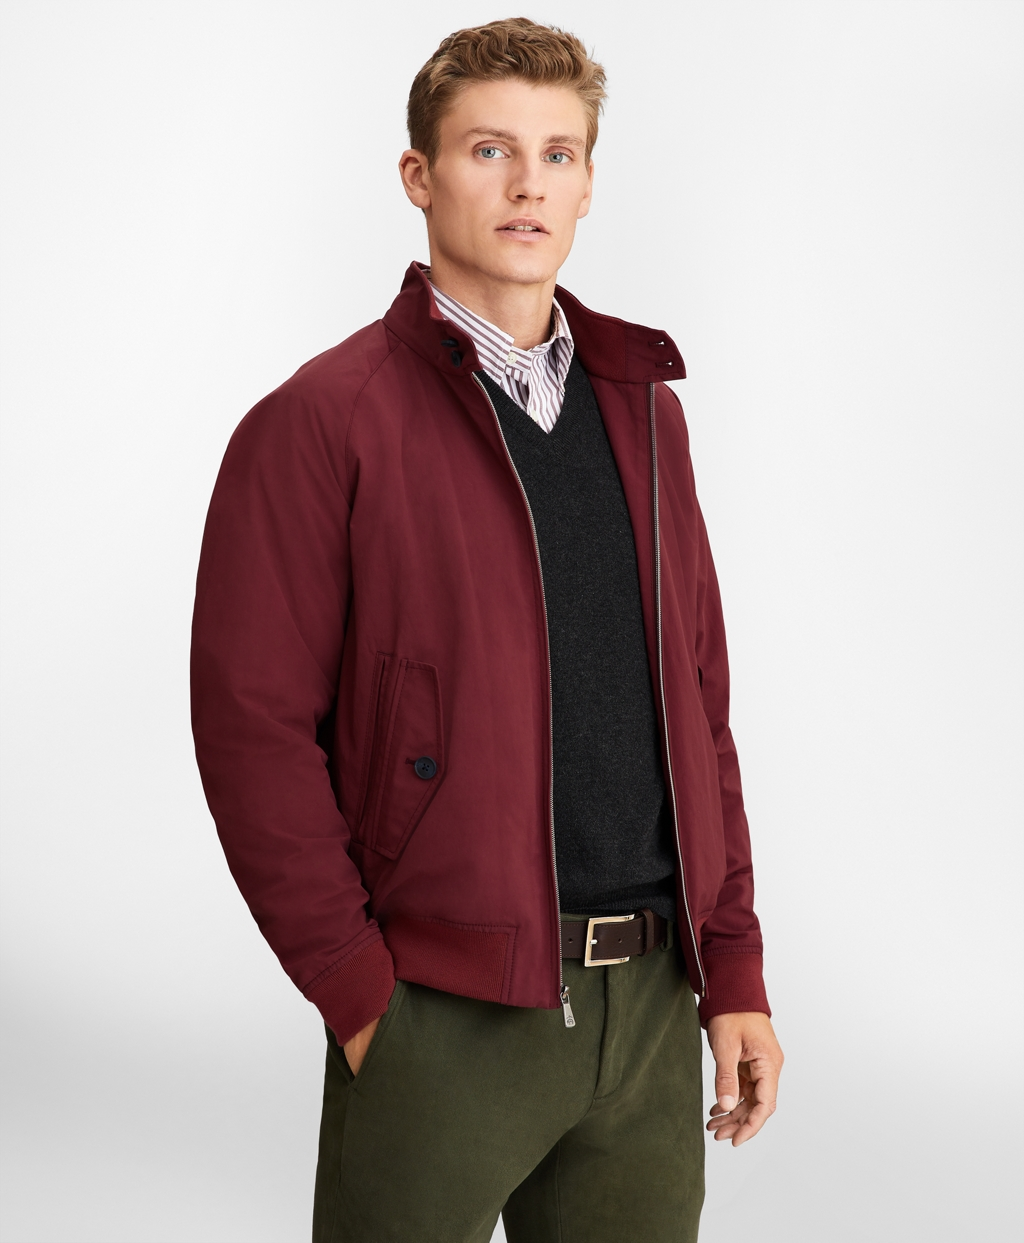 Men's Vintage Jackets & Coats Brooks Brothers Mens Vintage Bomber Jacket $208.60 AT vintagedancer.com